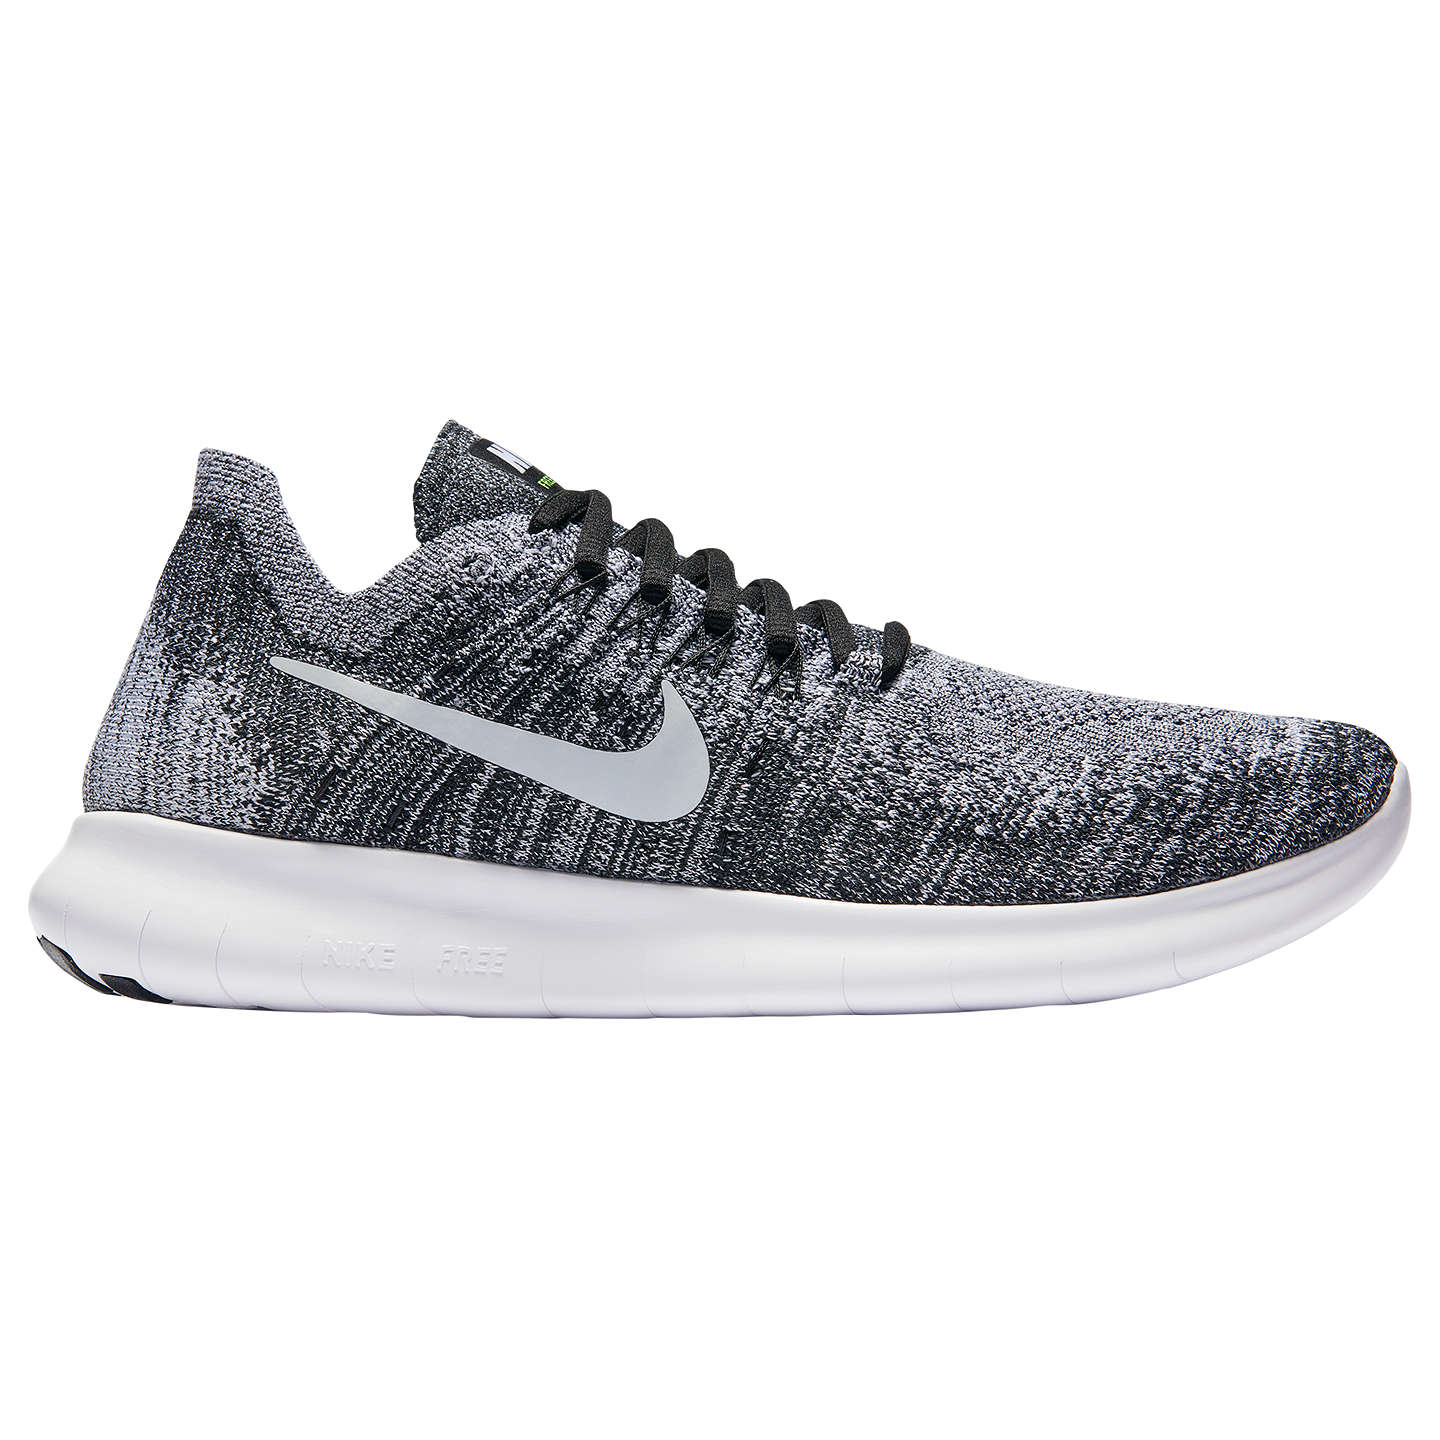 Nike Hommes Flyknit Libre 15% réduction profiter sortie sortie geniue stockist la fourniture 5NWg010gLM